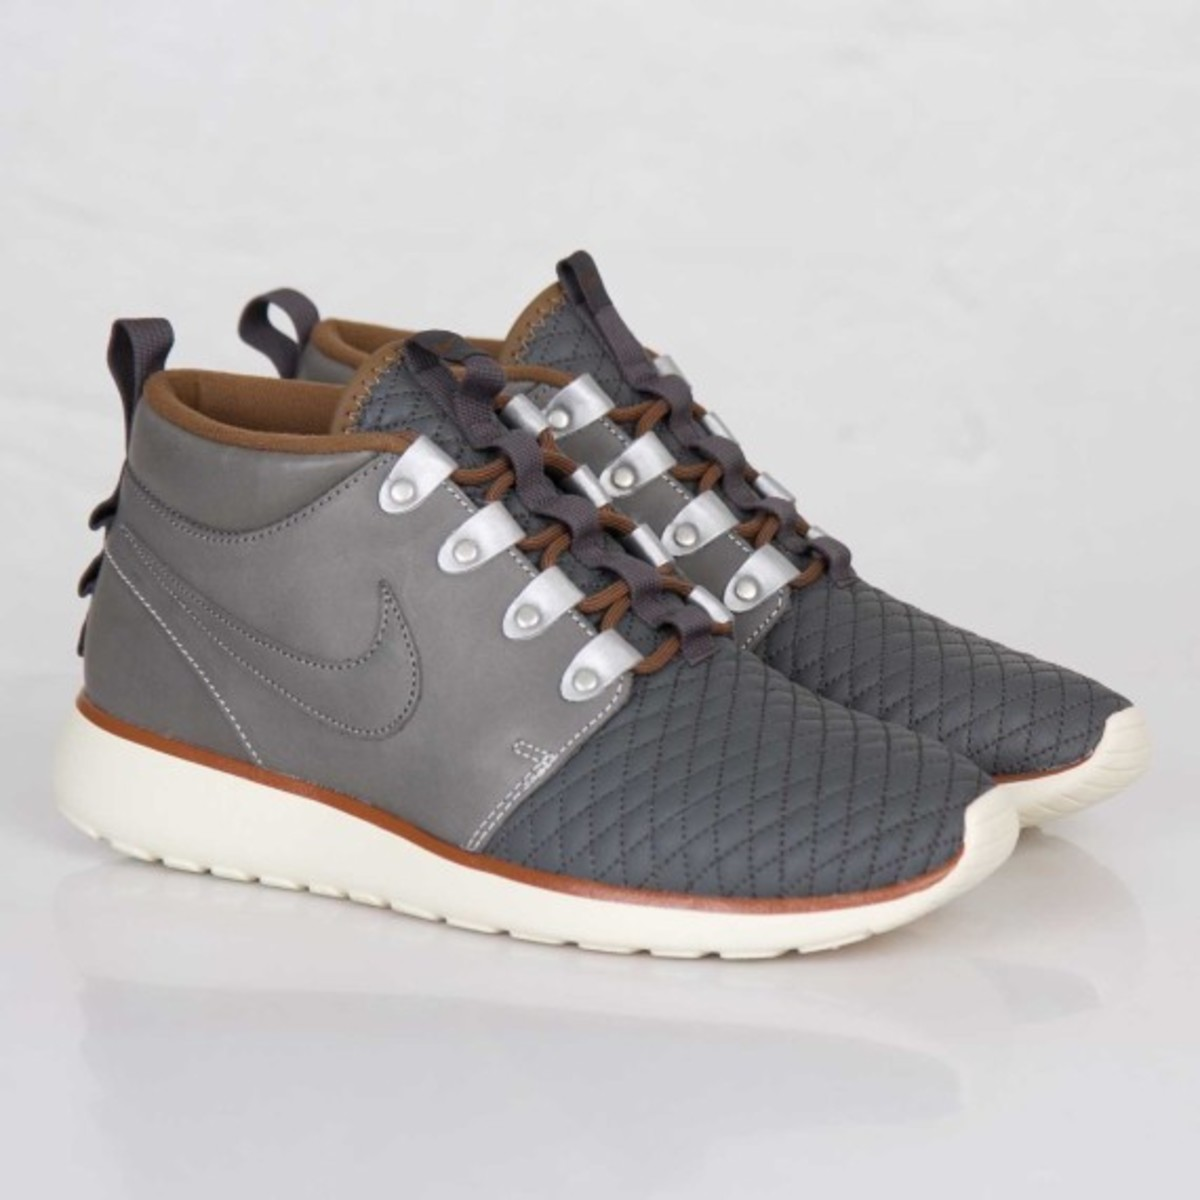 Nike Roshe Run Sneakerboot QS - Mercury Grey | Available Now